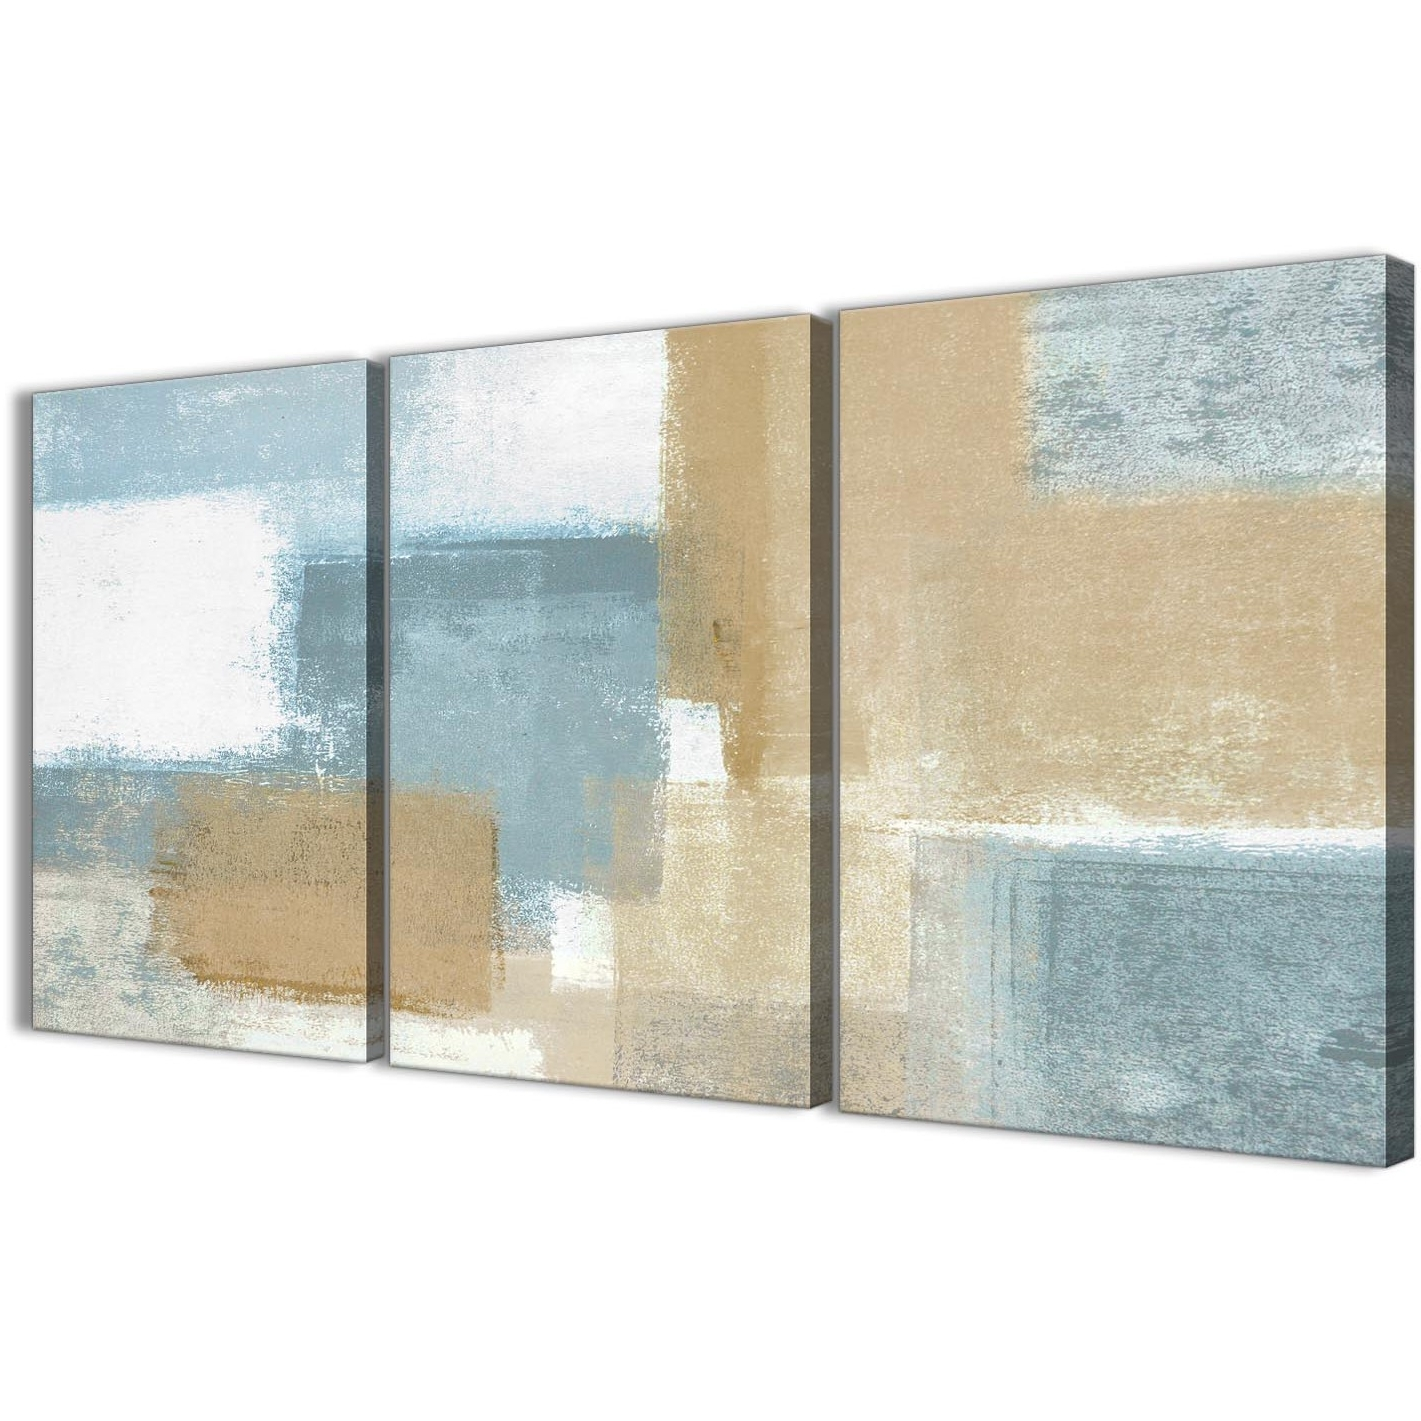 Blue Beige Brown Abstract Painting Canvas Wall Art Print – Multi With Widely Used Blue And Brown Canvas Wall Art (View 4 of 15)